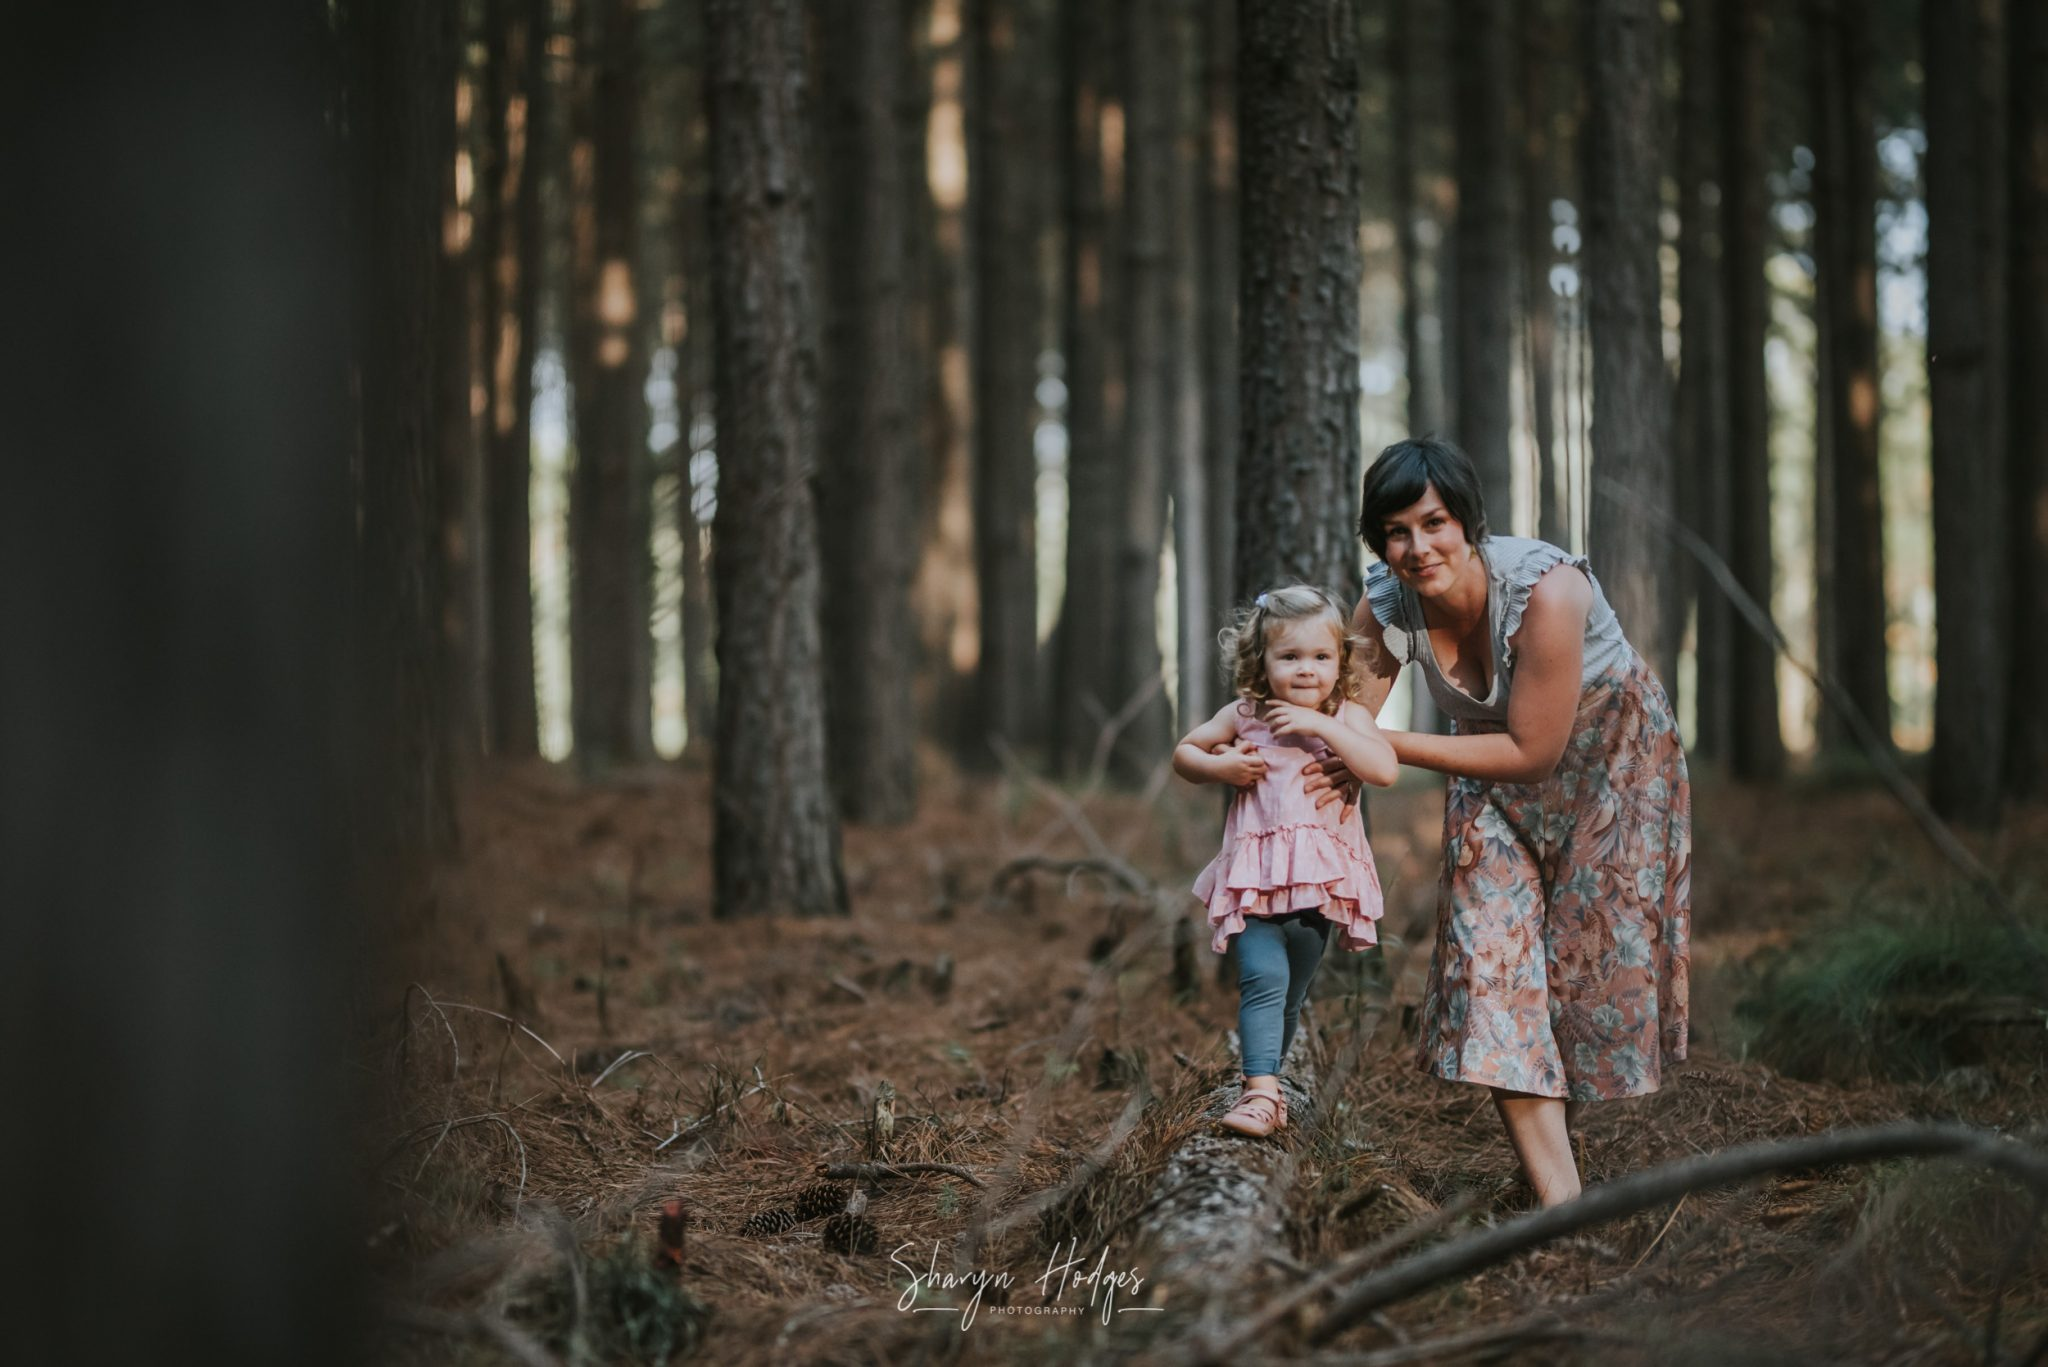 Sharyn Hodges, Tsitsikamma, forest shoot, family forest shoot, plett photographer, garden route family photography, tsts